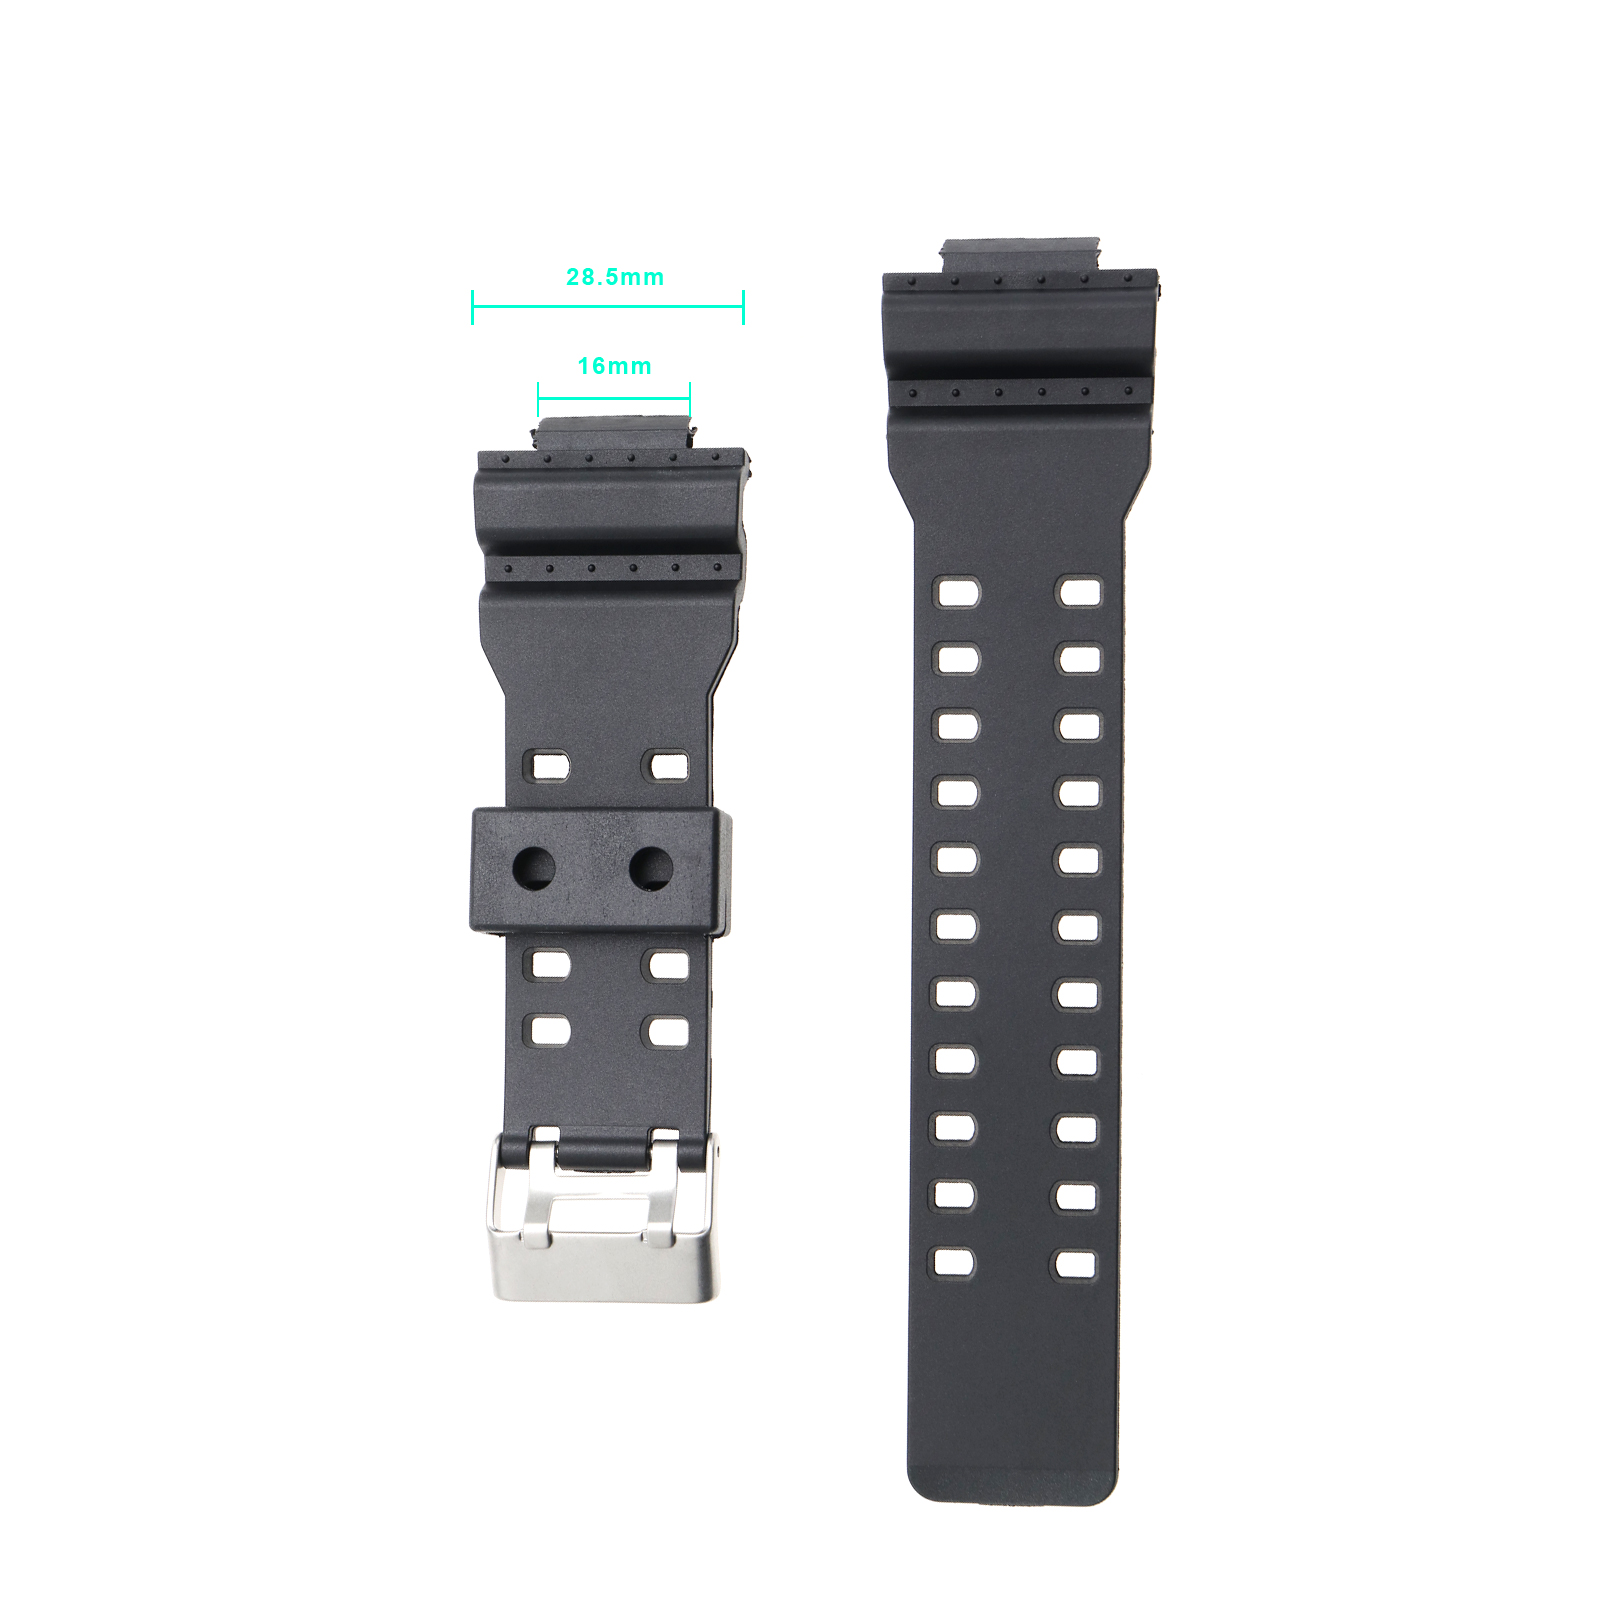 Details about PU Replacement Watch Band Strap For G SHOCK G 8900 GD 100 GLS 8900 GD 120